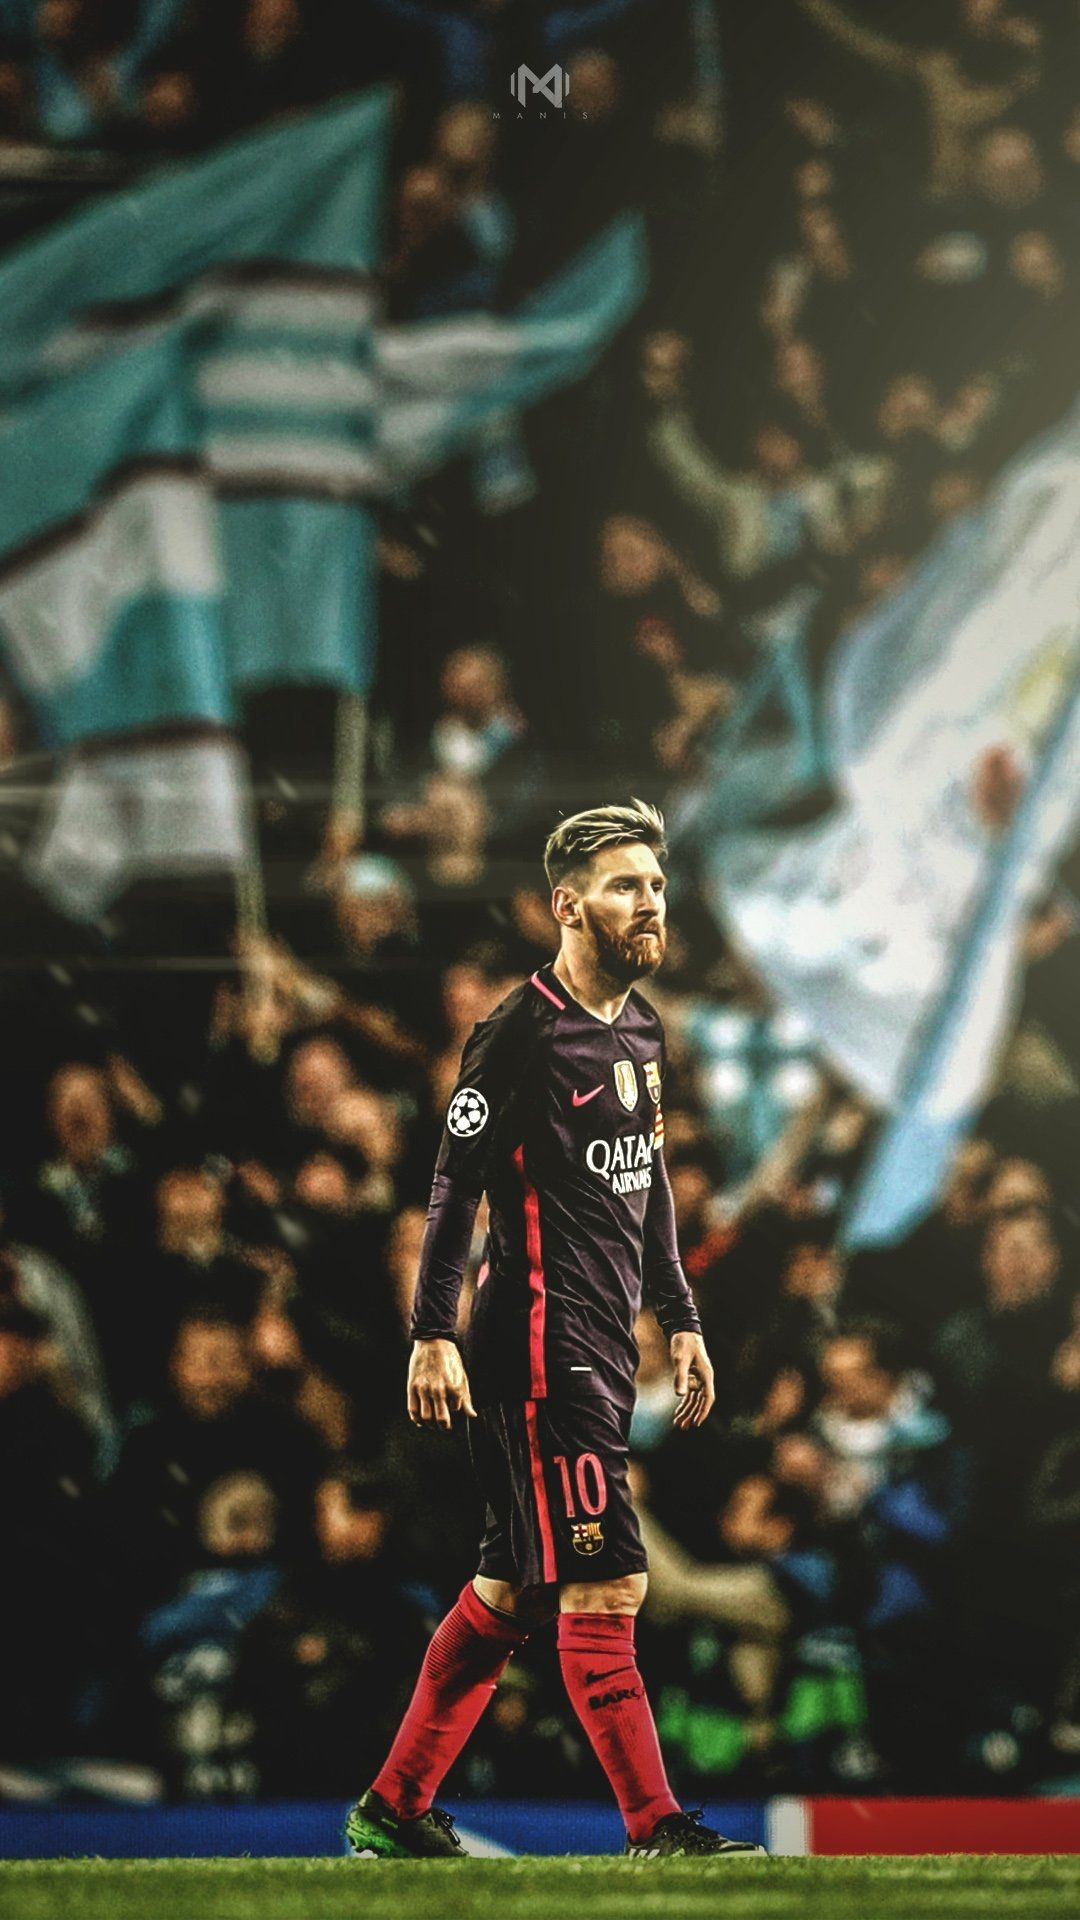 messi hd pic For free